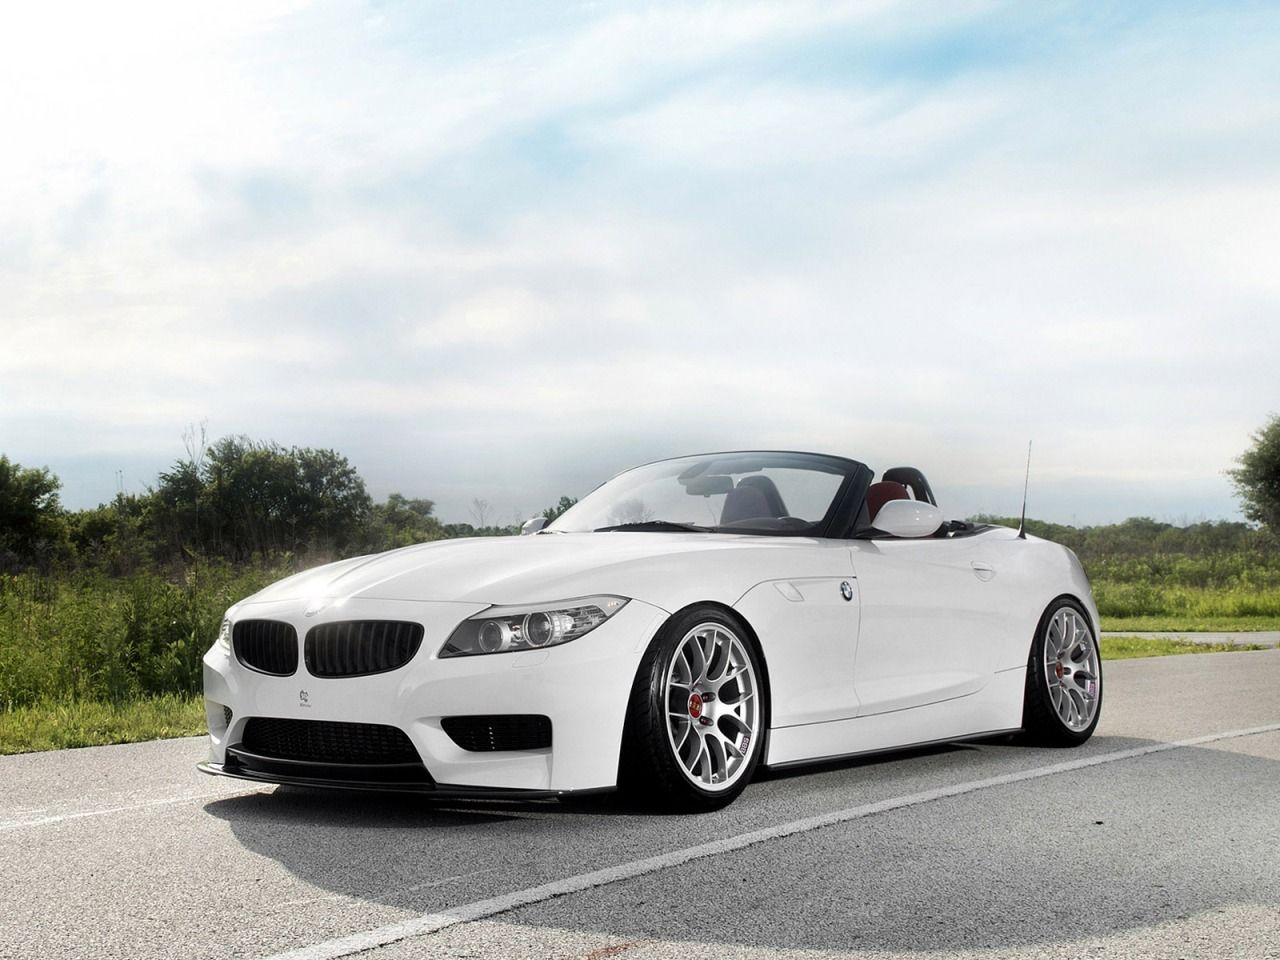 bmw e89 z4 white bmw roadsters coupes pinterest. Black Bedroom Furniture Sets. Home Design Ideas